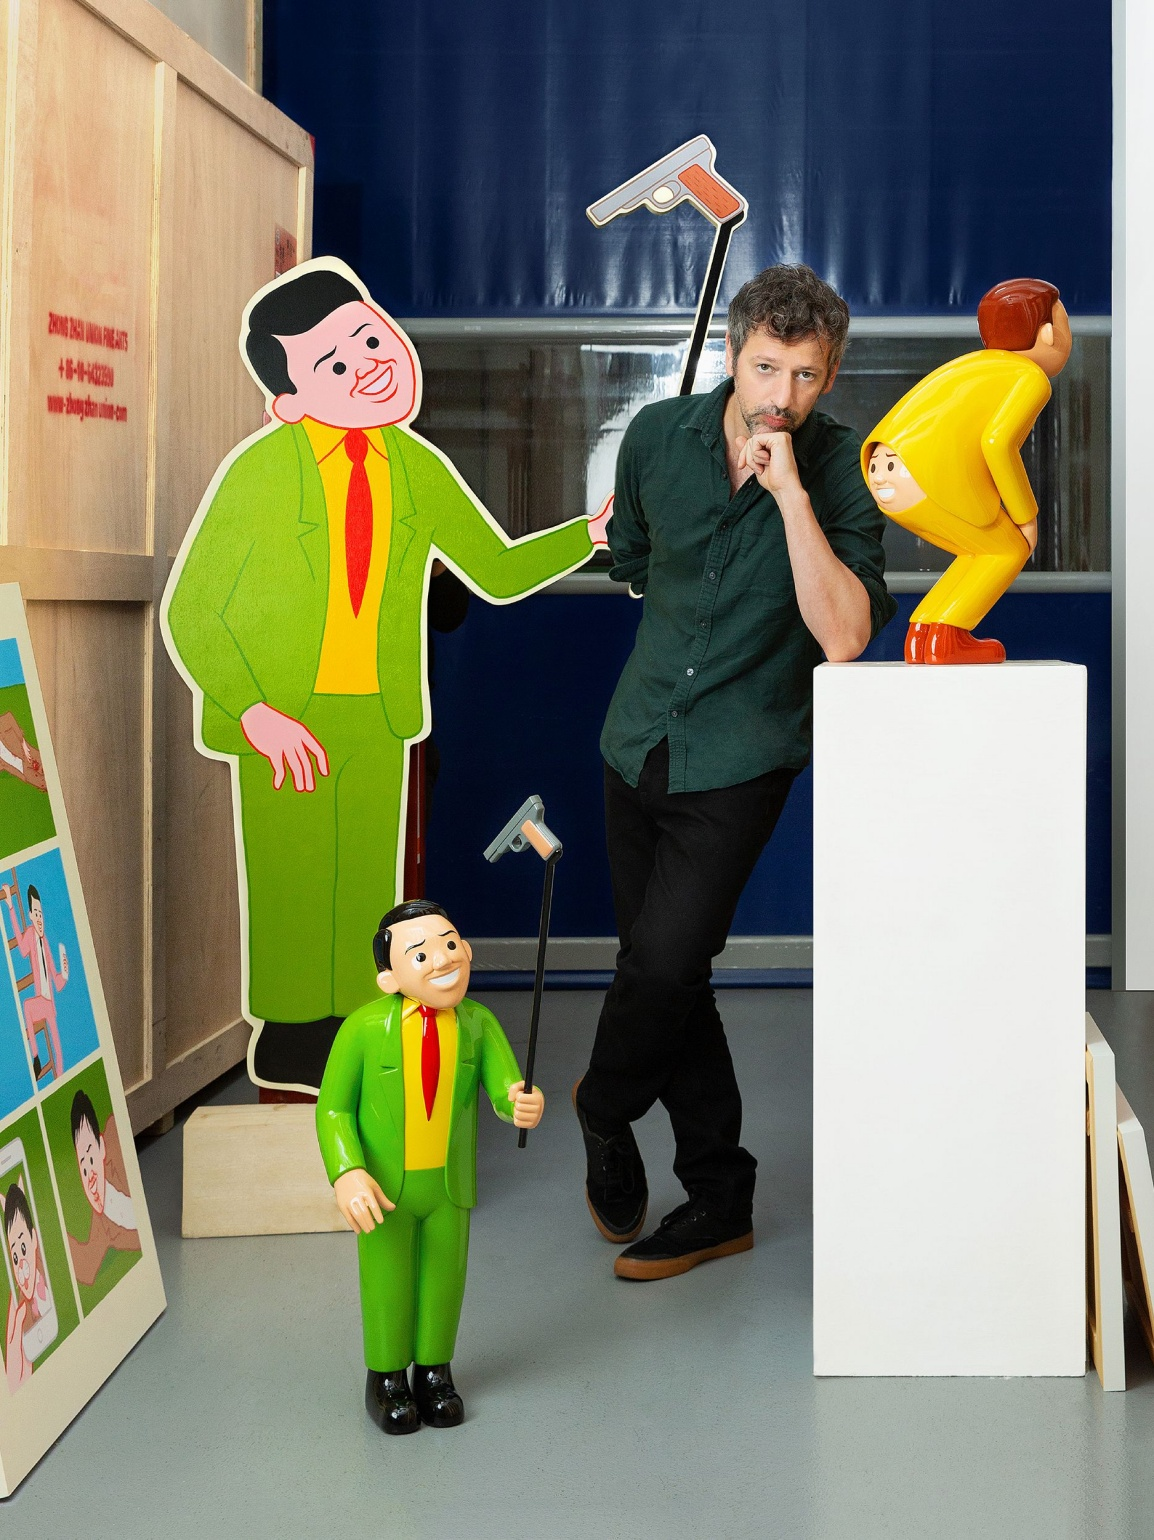 Joan Cornellà's My Life is Pointless exhibition Sotheby's AllRightsReserved